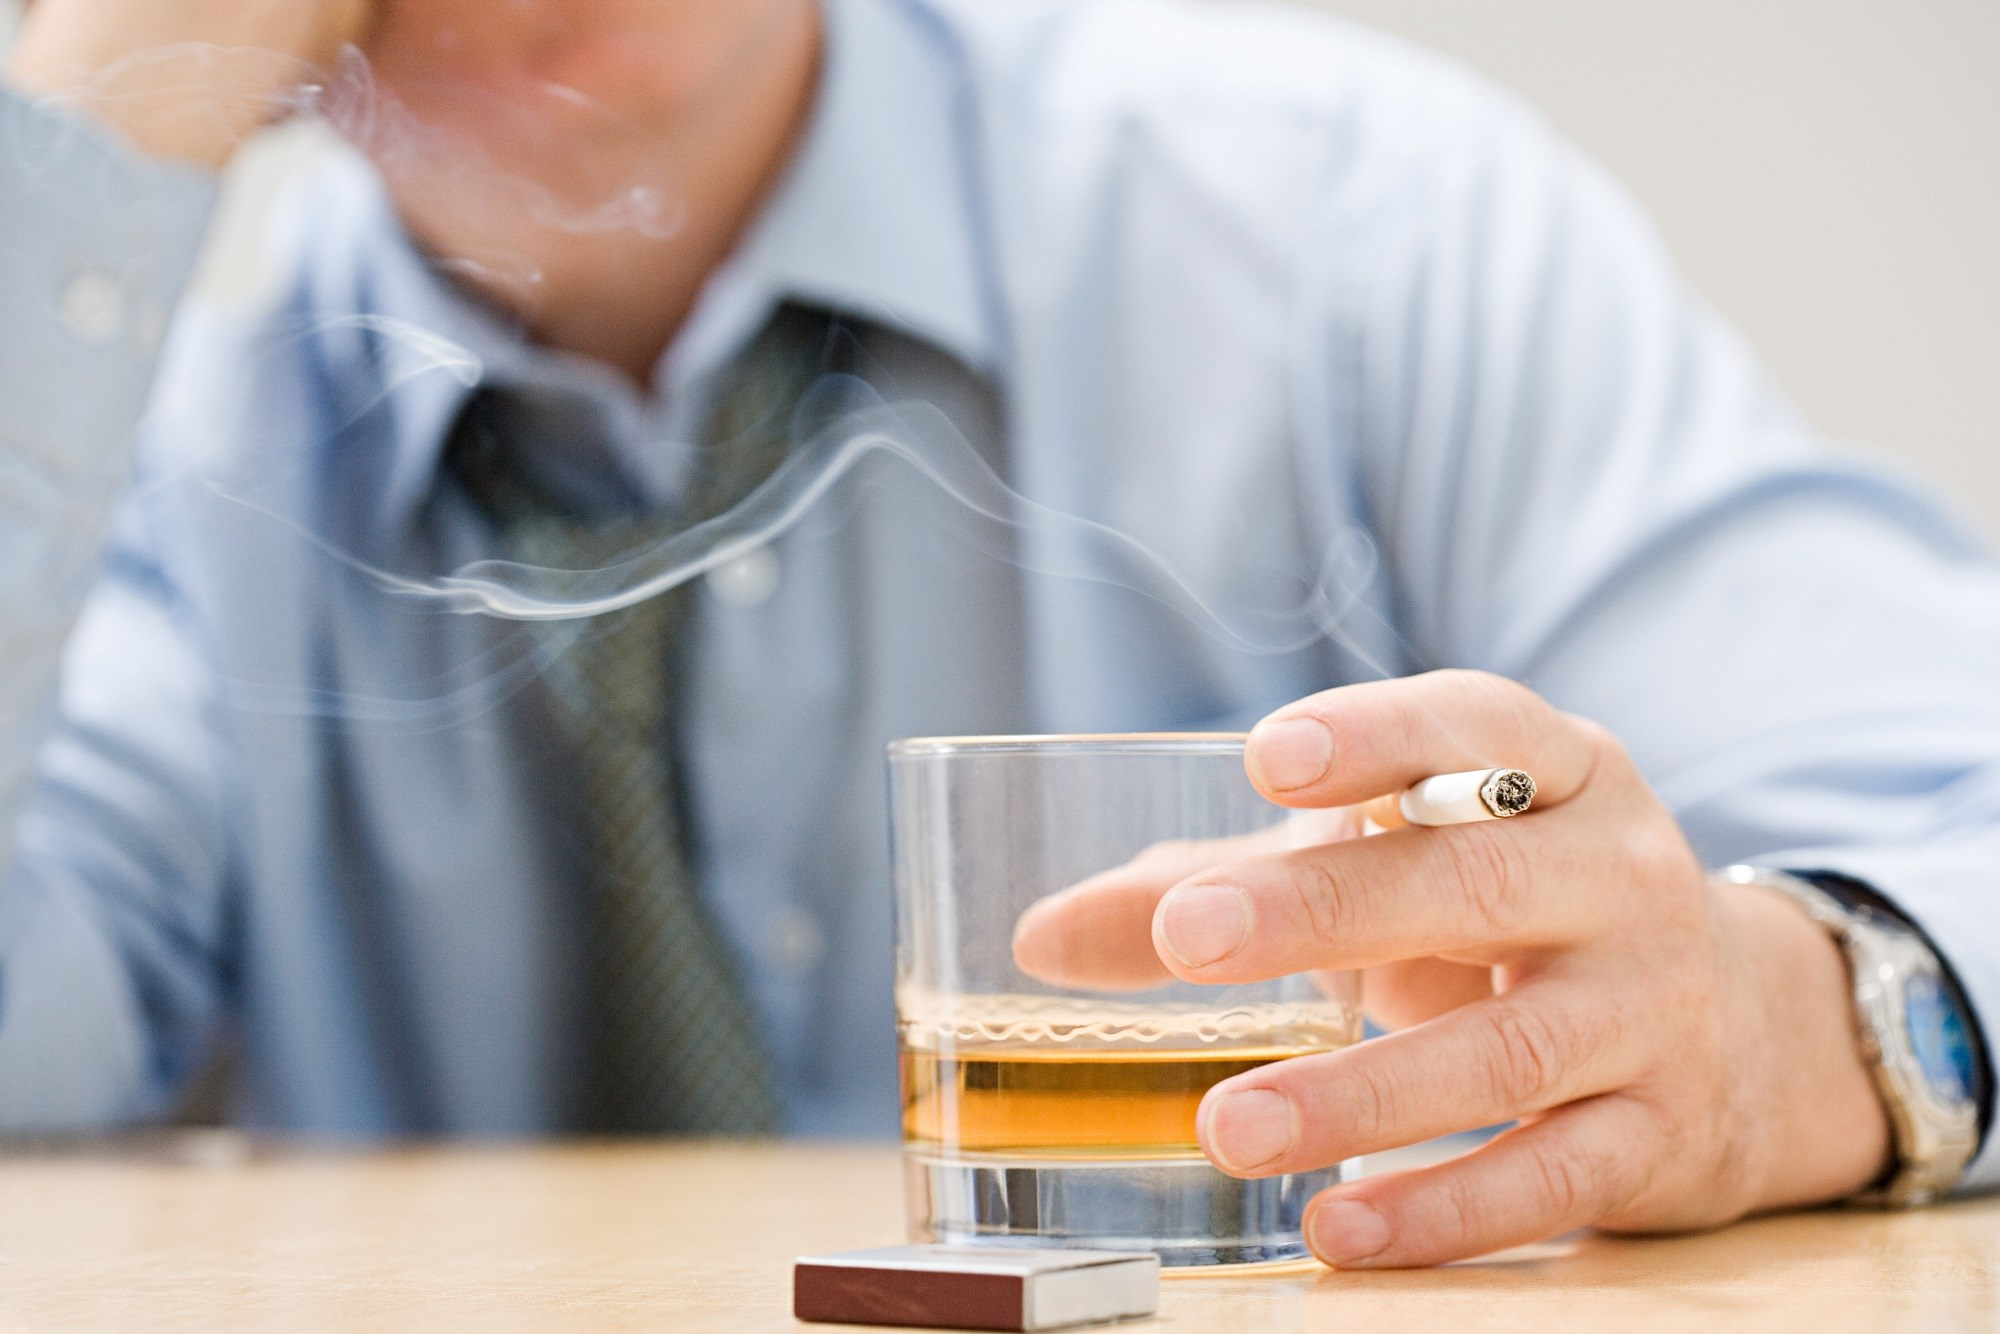 Independent and Combined Tobacco and Alcohol Use Associated With Suicide Risk